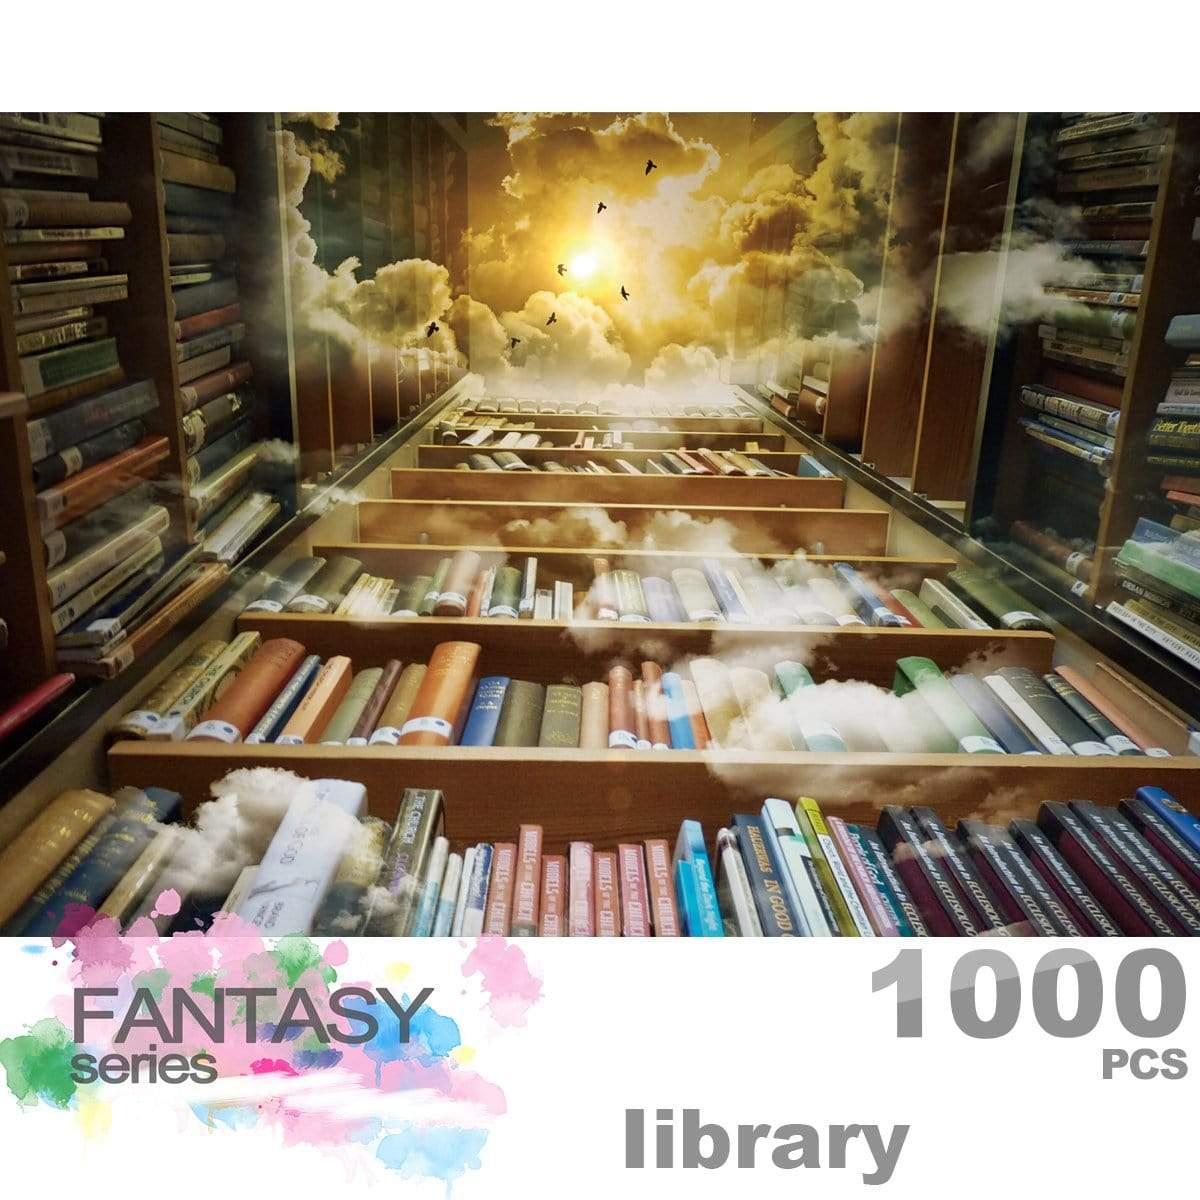 Ingooood Wooden Jigsaw Puzzle 1000 Pieces for Adult - Library - Ingooood